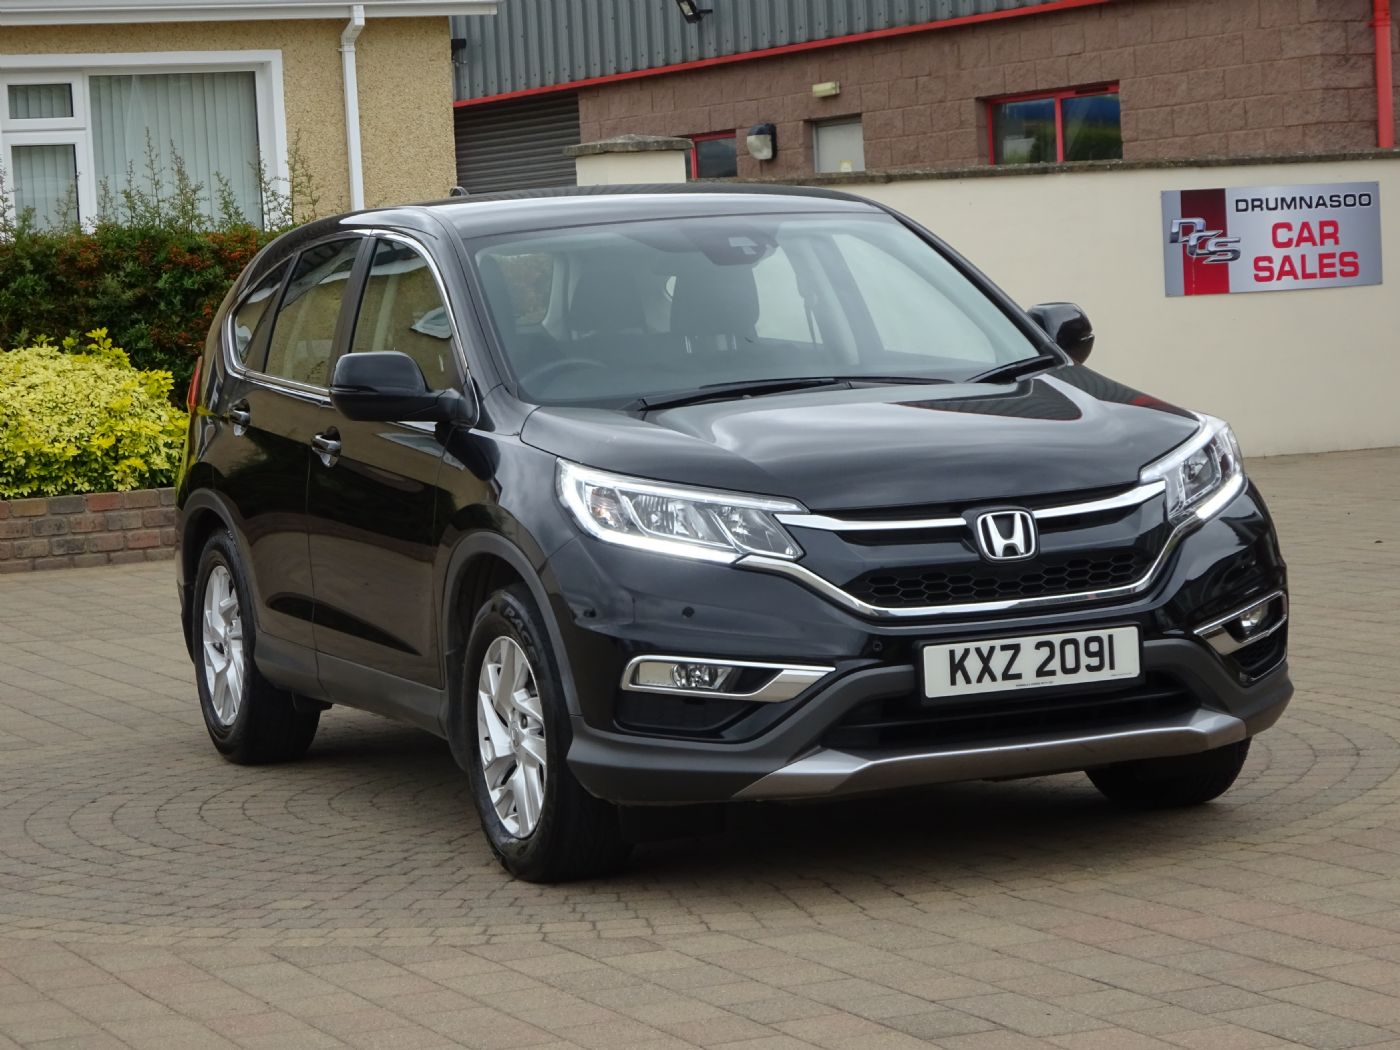 Honda CR-V SE I-DTEC 4X2, Reversing Camera, £30 Road Tax